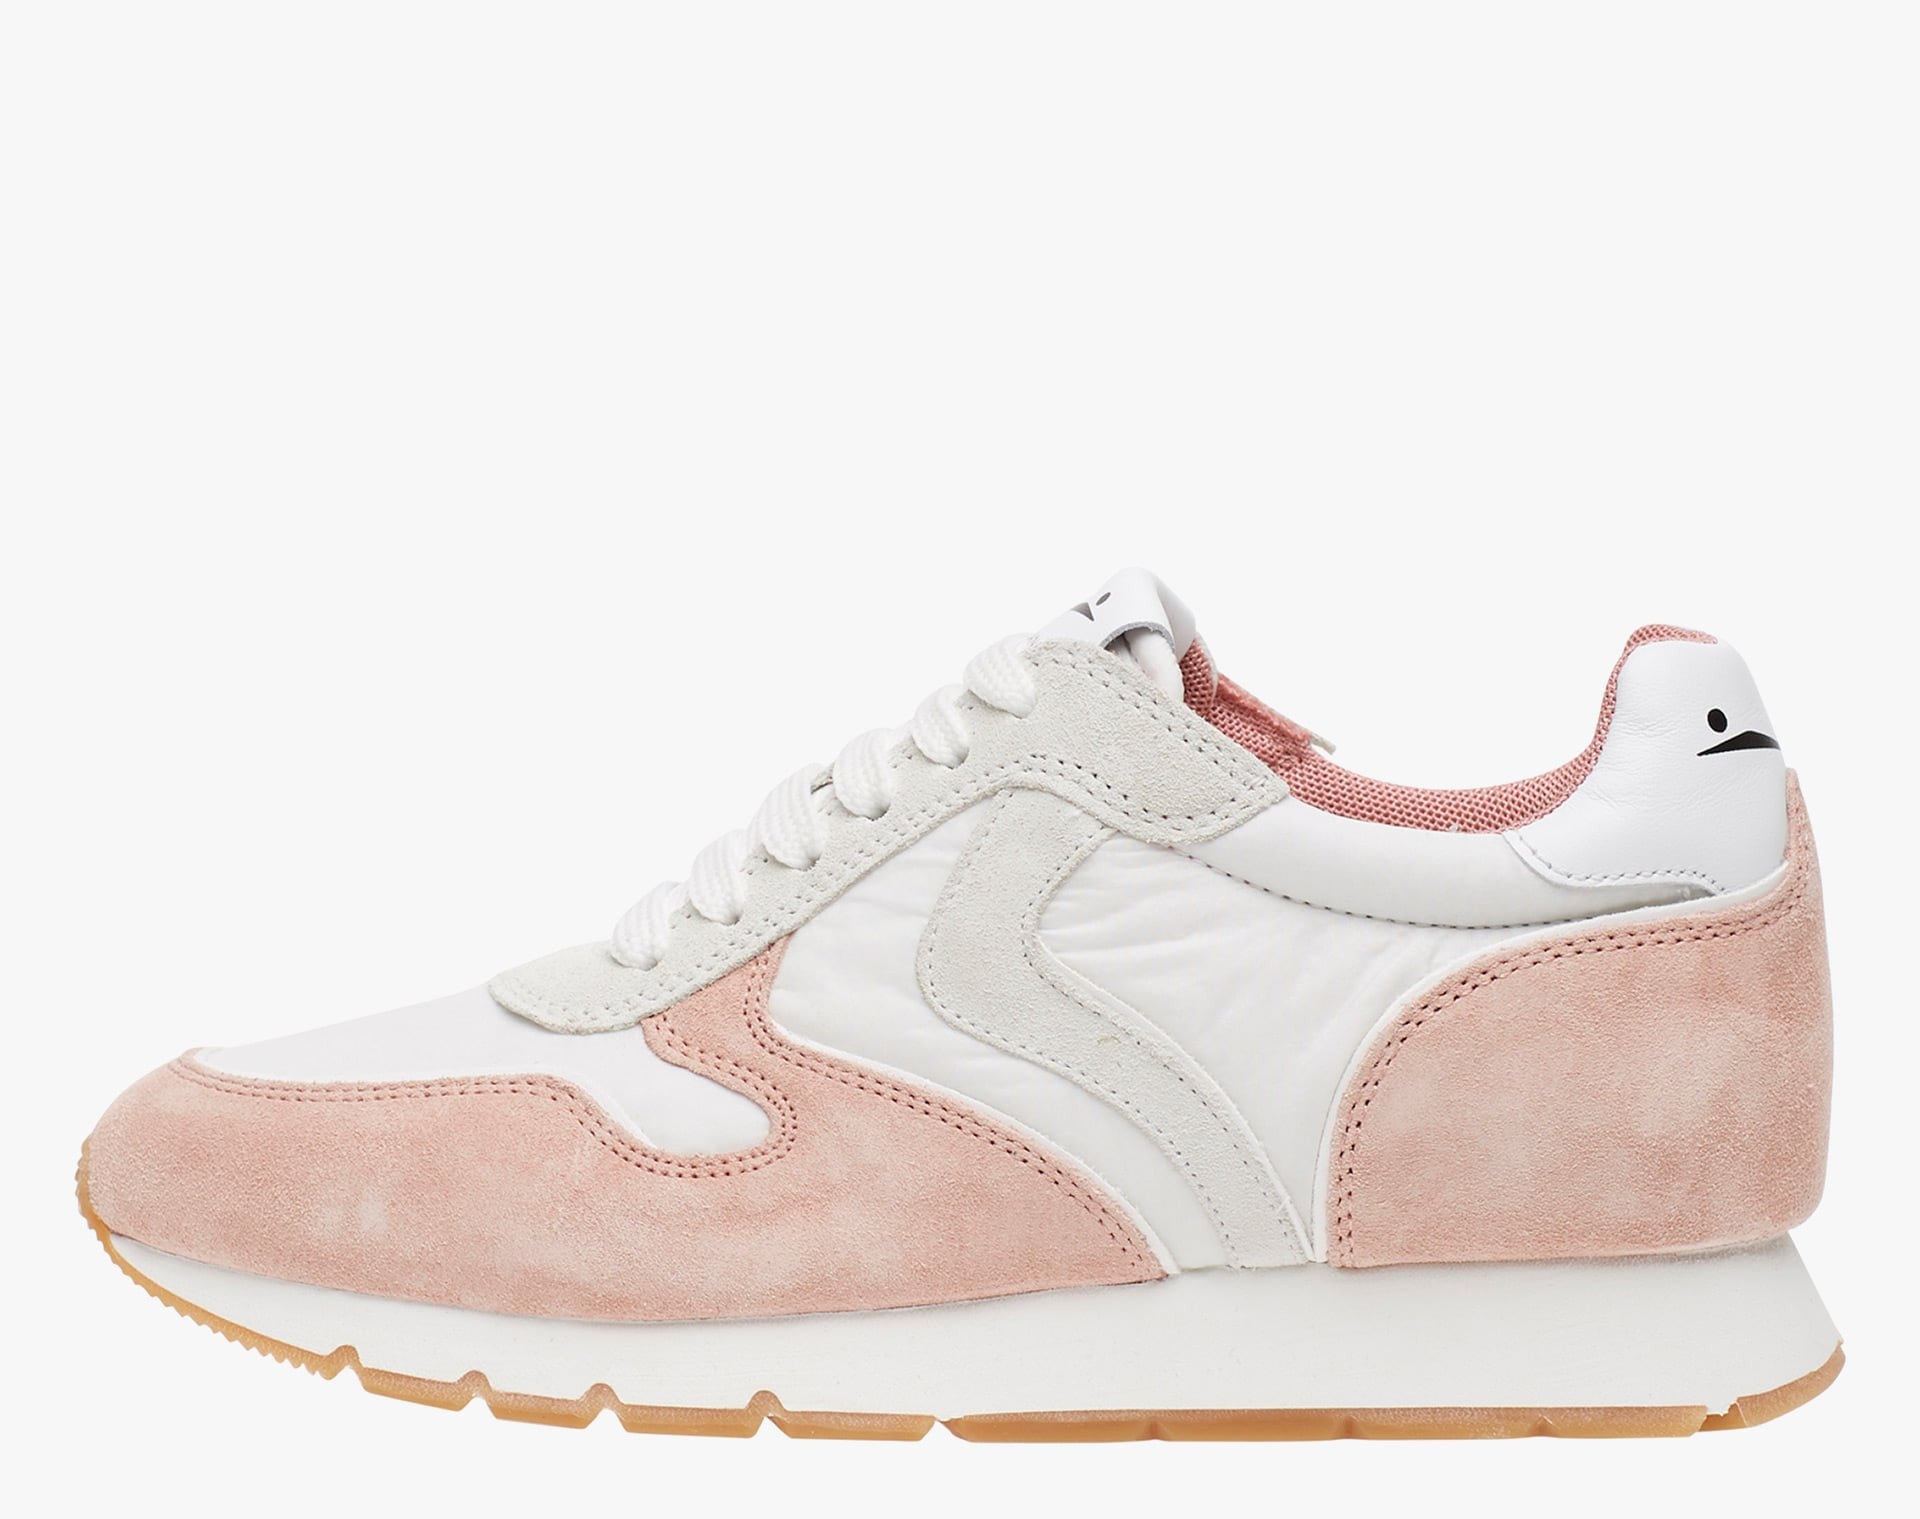 JULIA - Suede and technical fabric sneakers - Pink